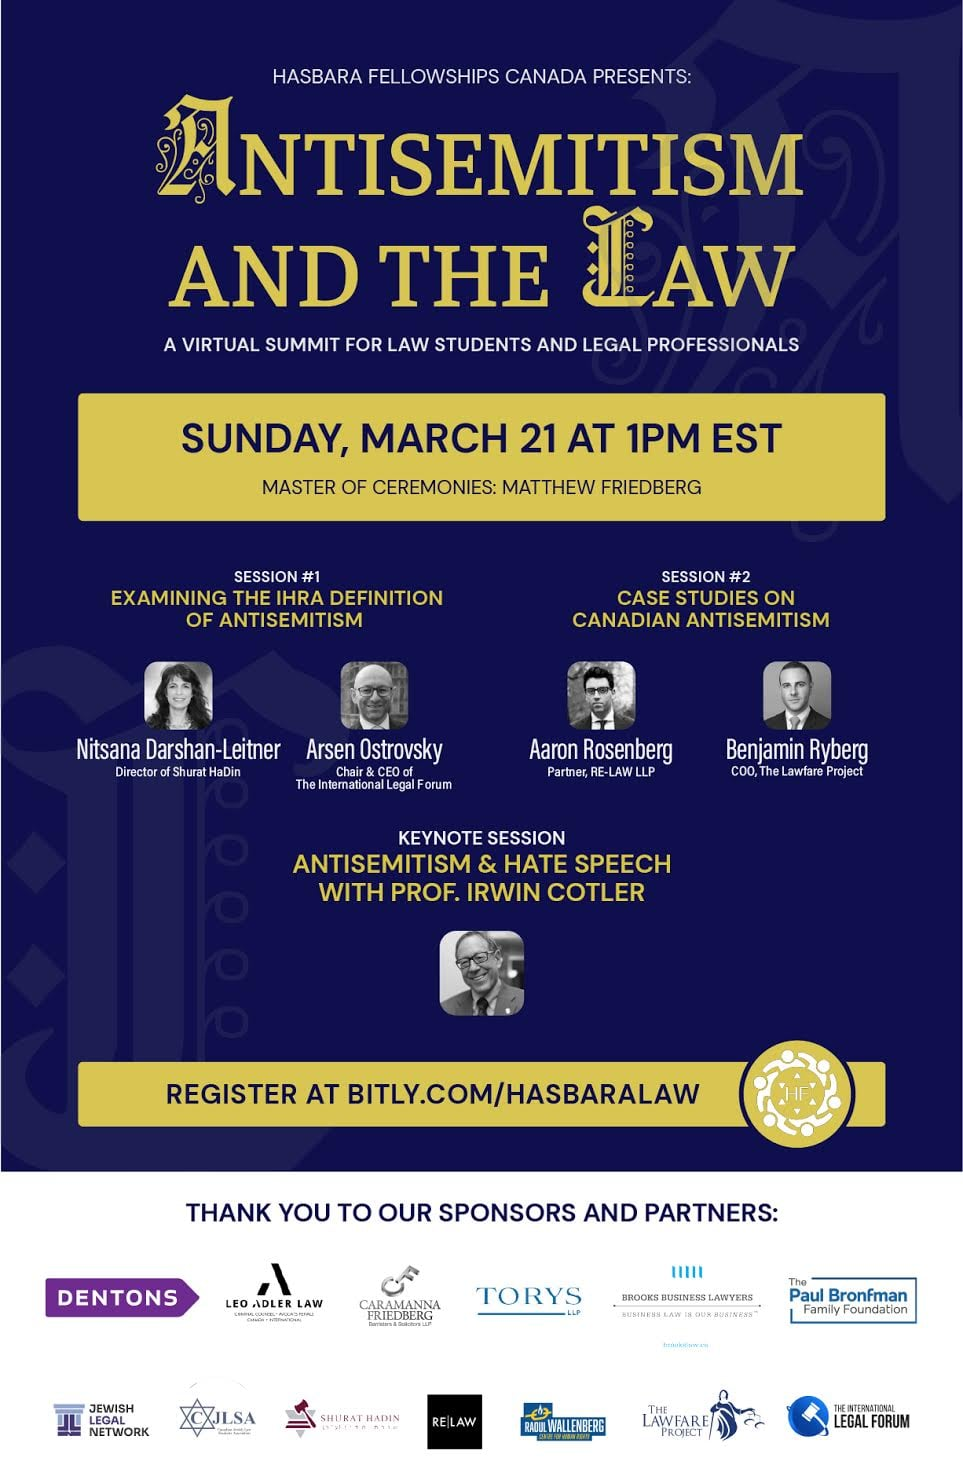 Antisemitism and the Law